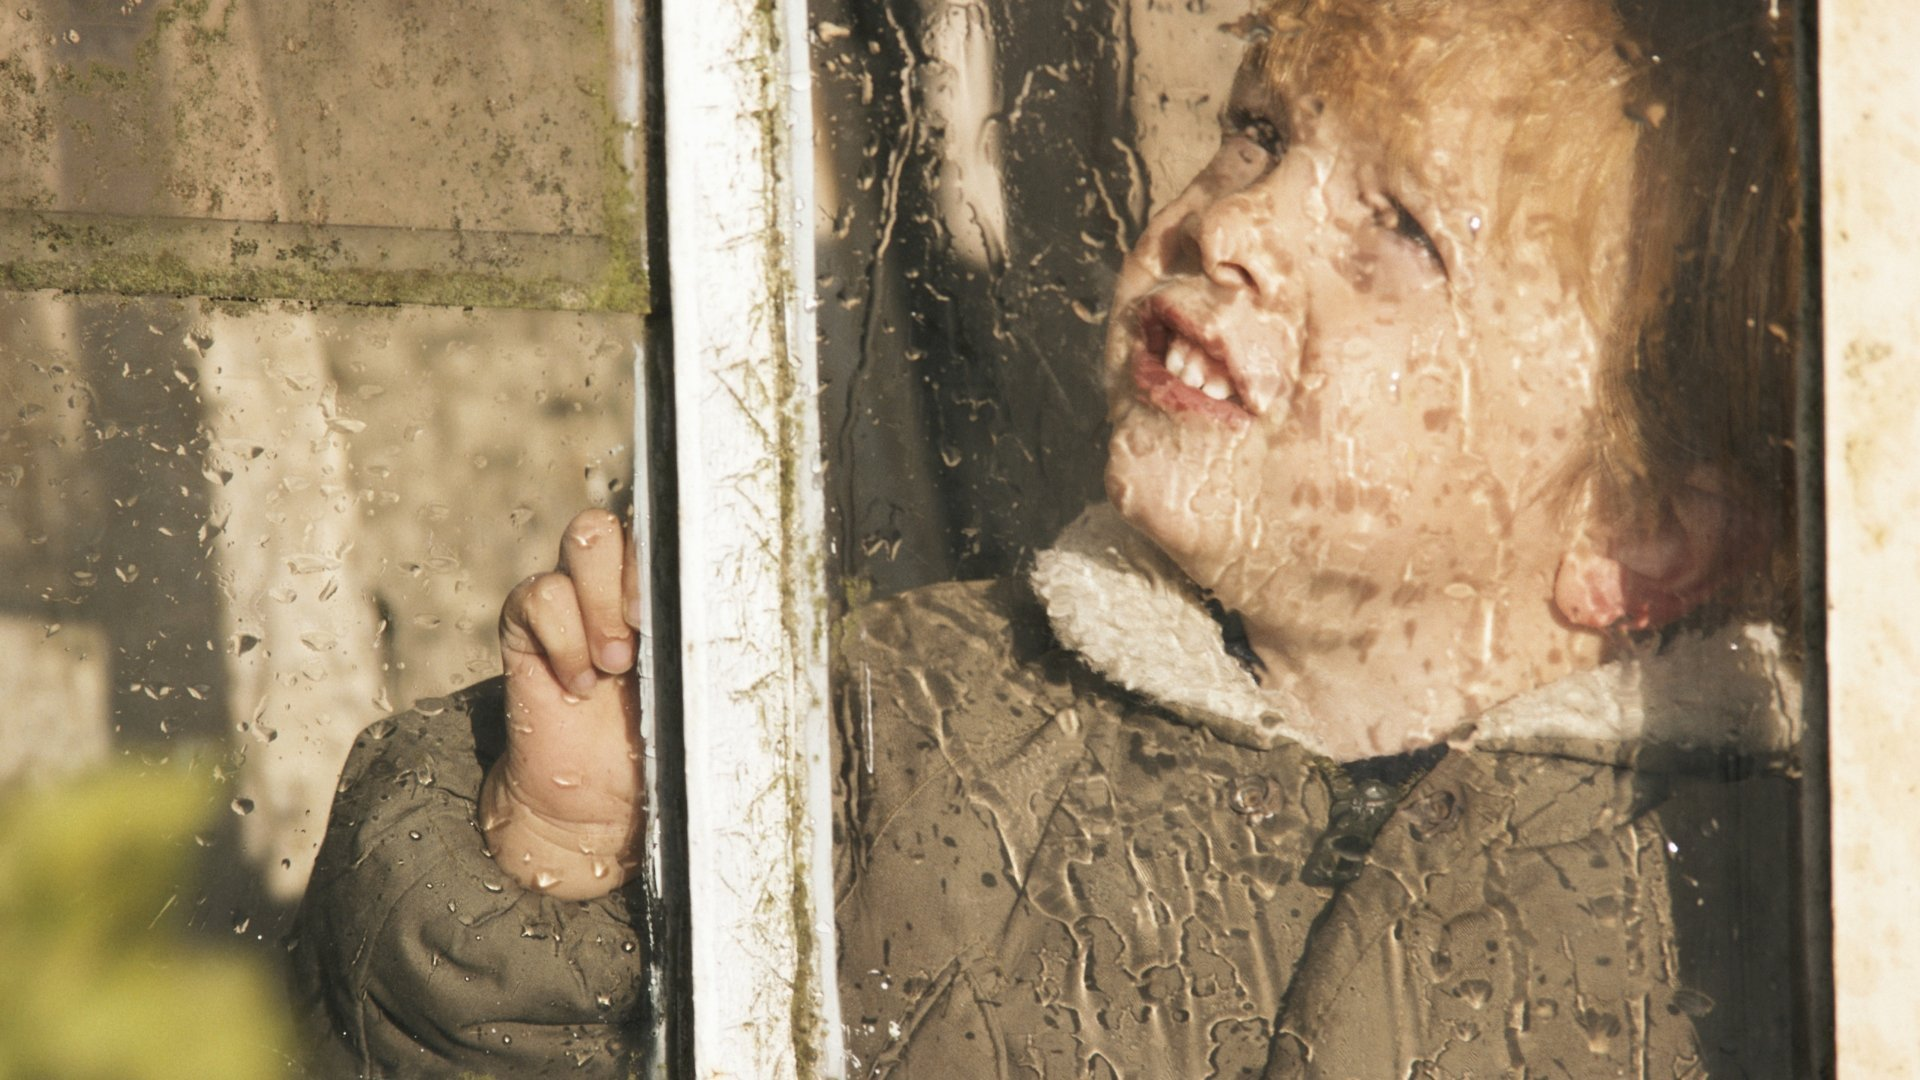 Boy Looking Out Window on Rainy Day